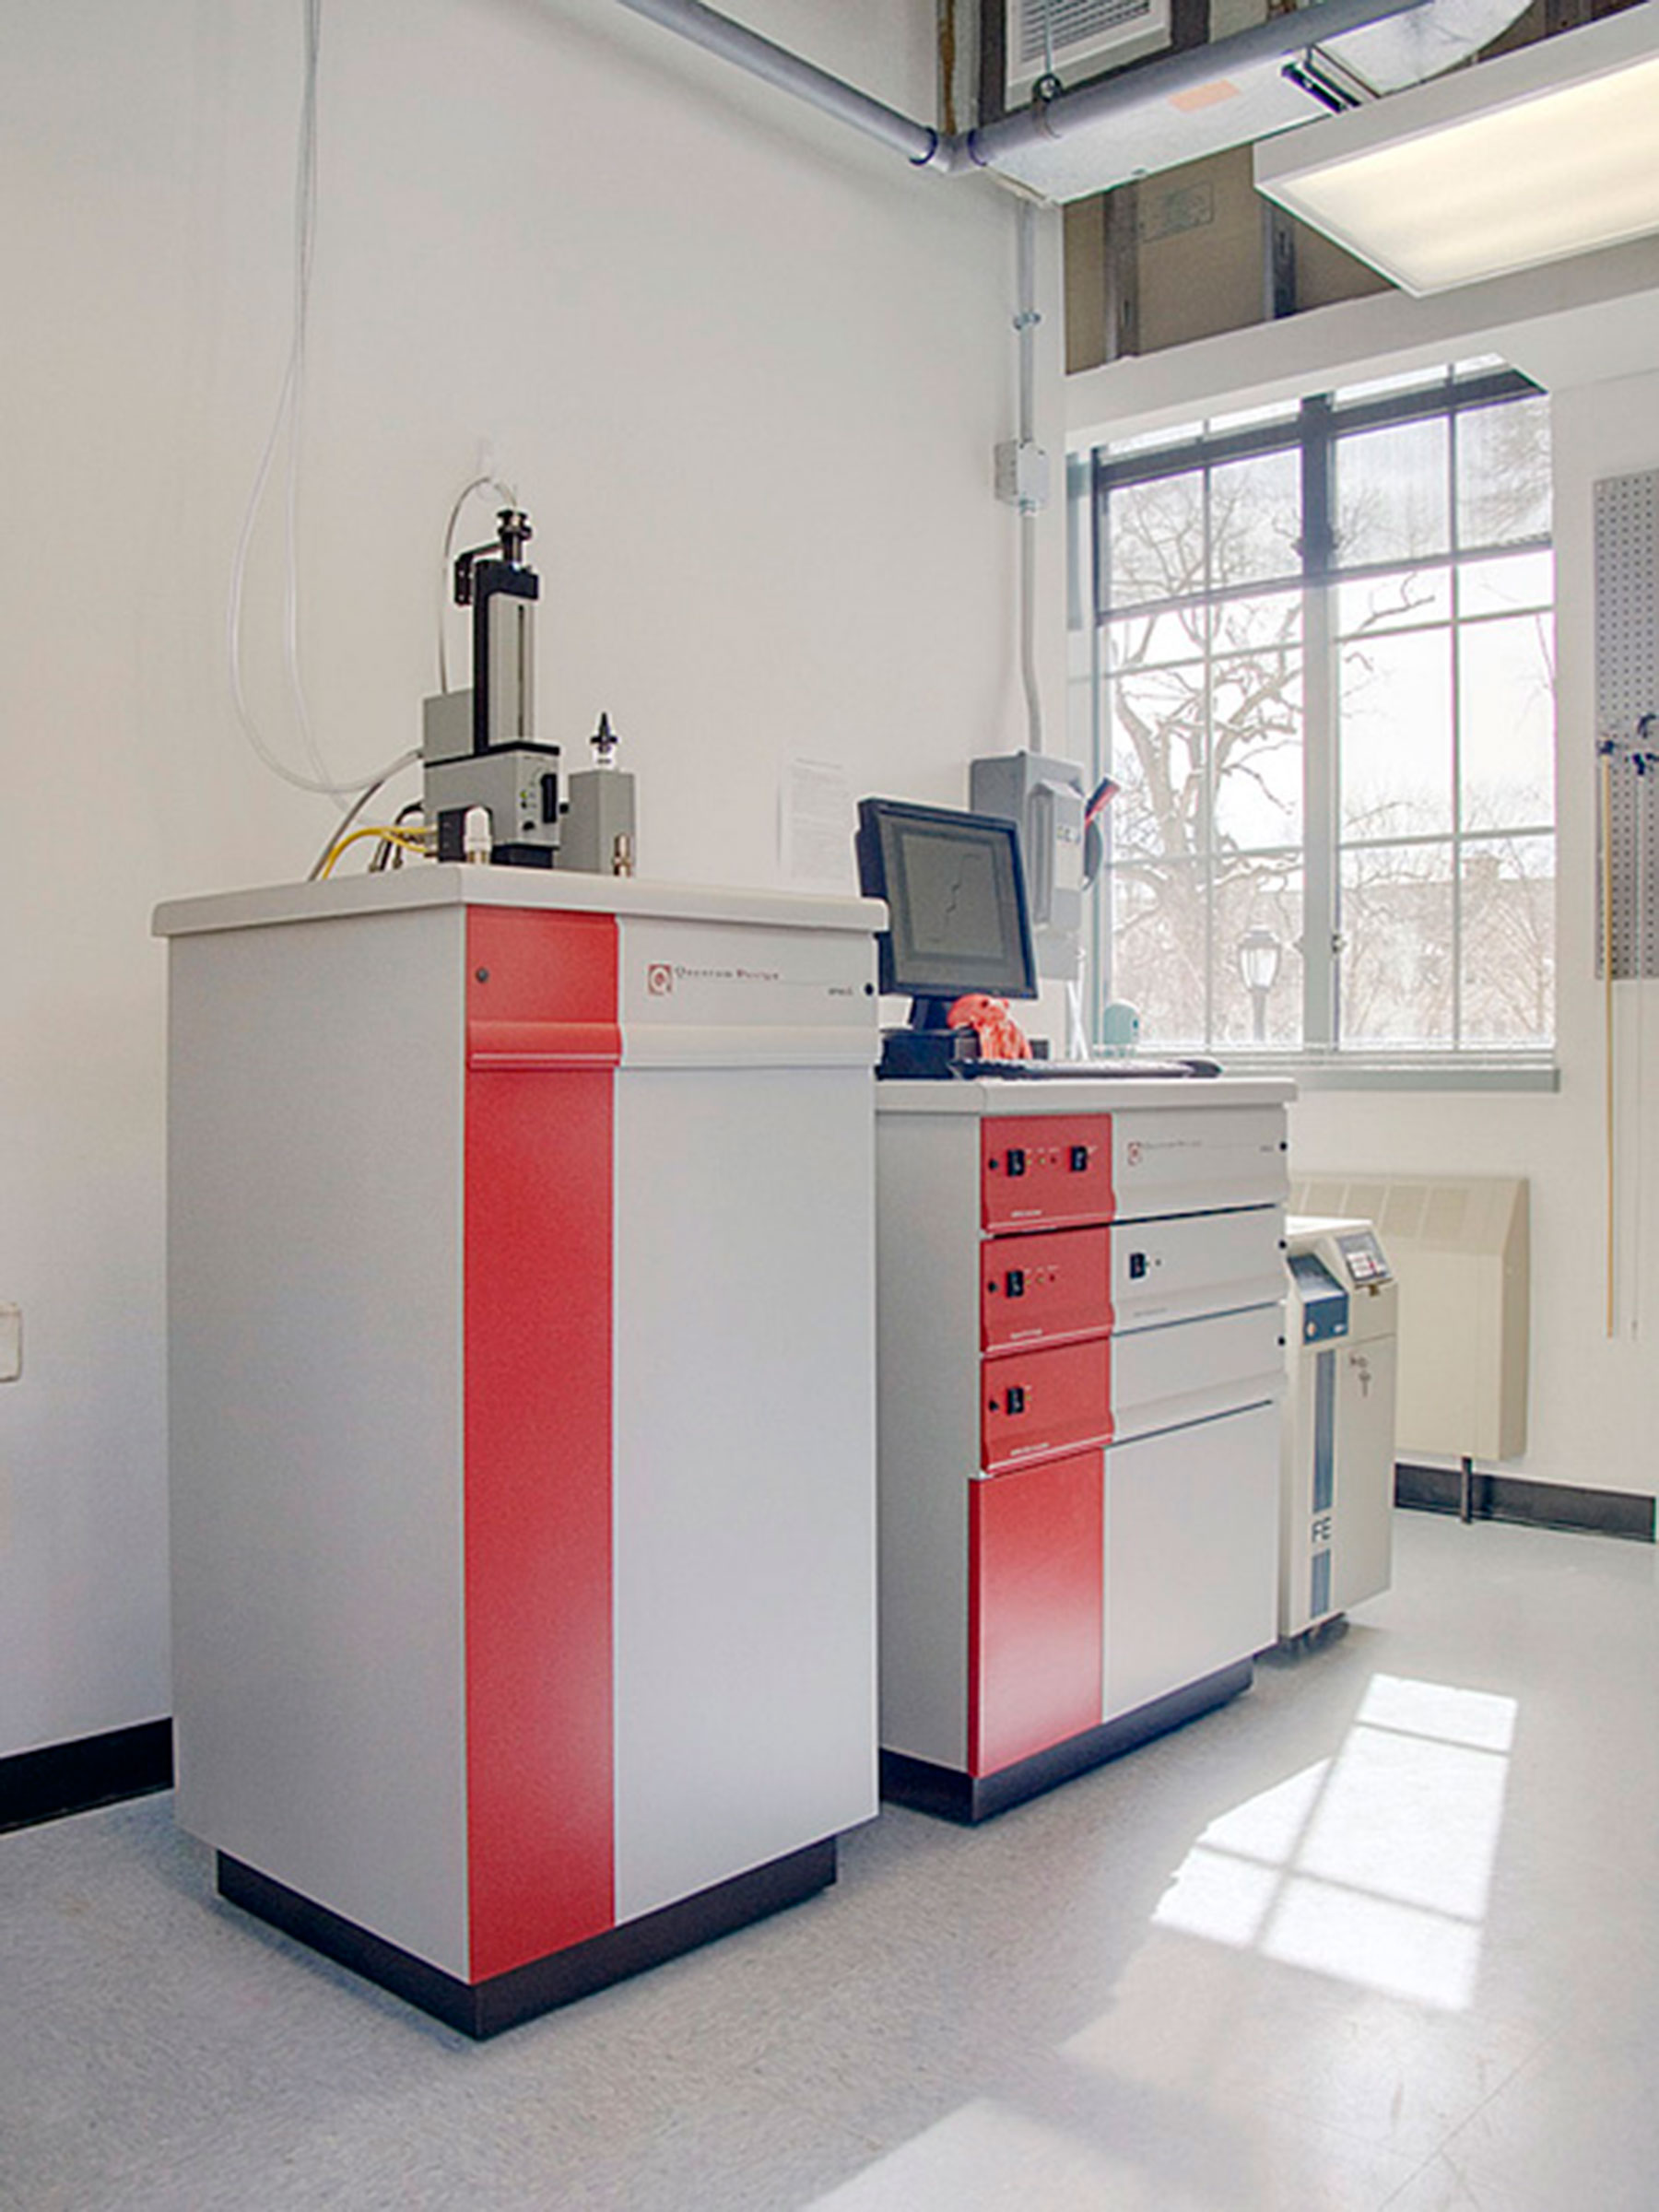 Synthetic Inorganic Chemistry Lab | Frank H  Stowell & Sons, Inc